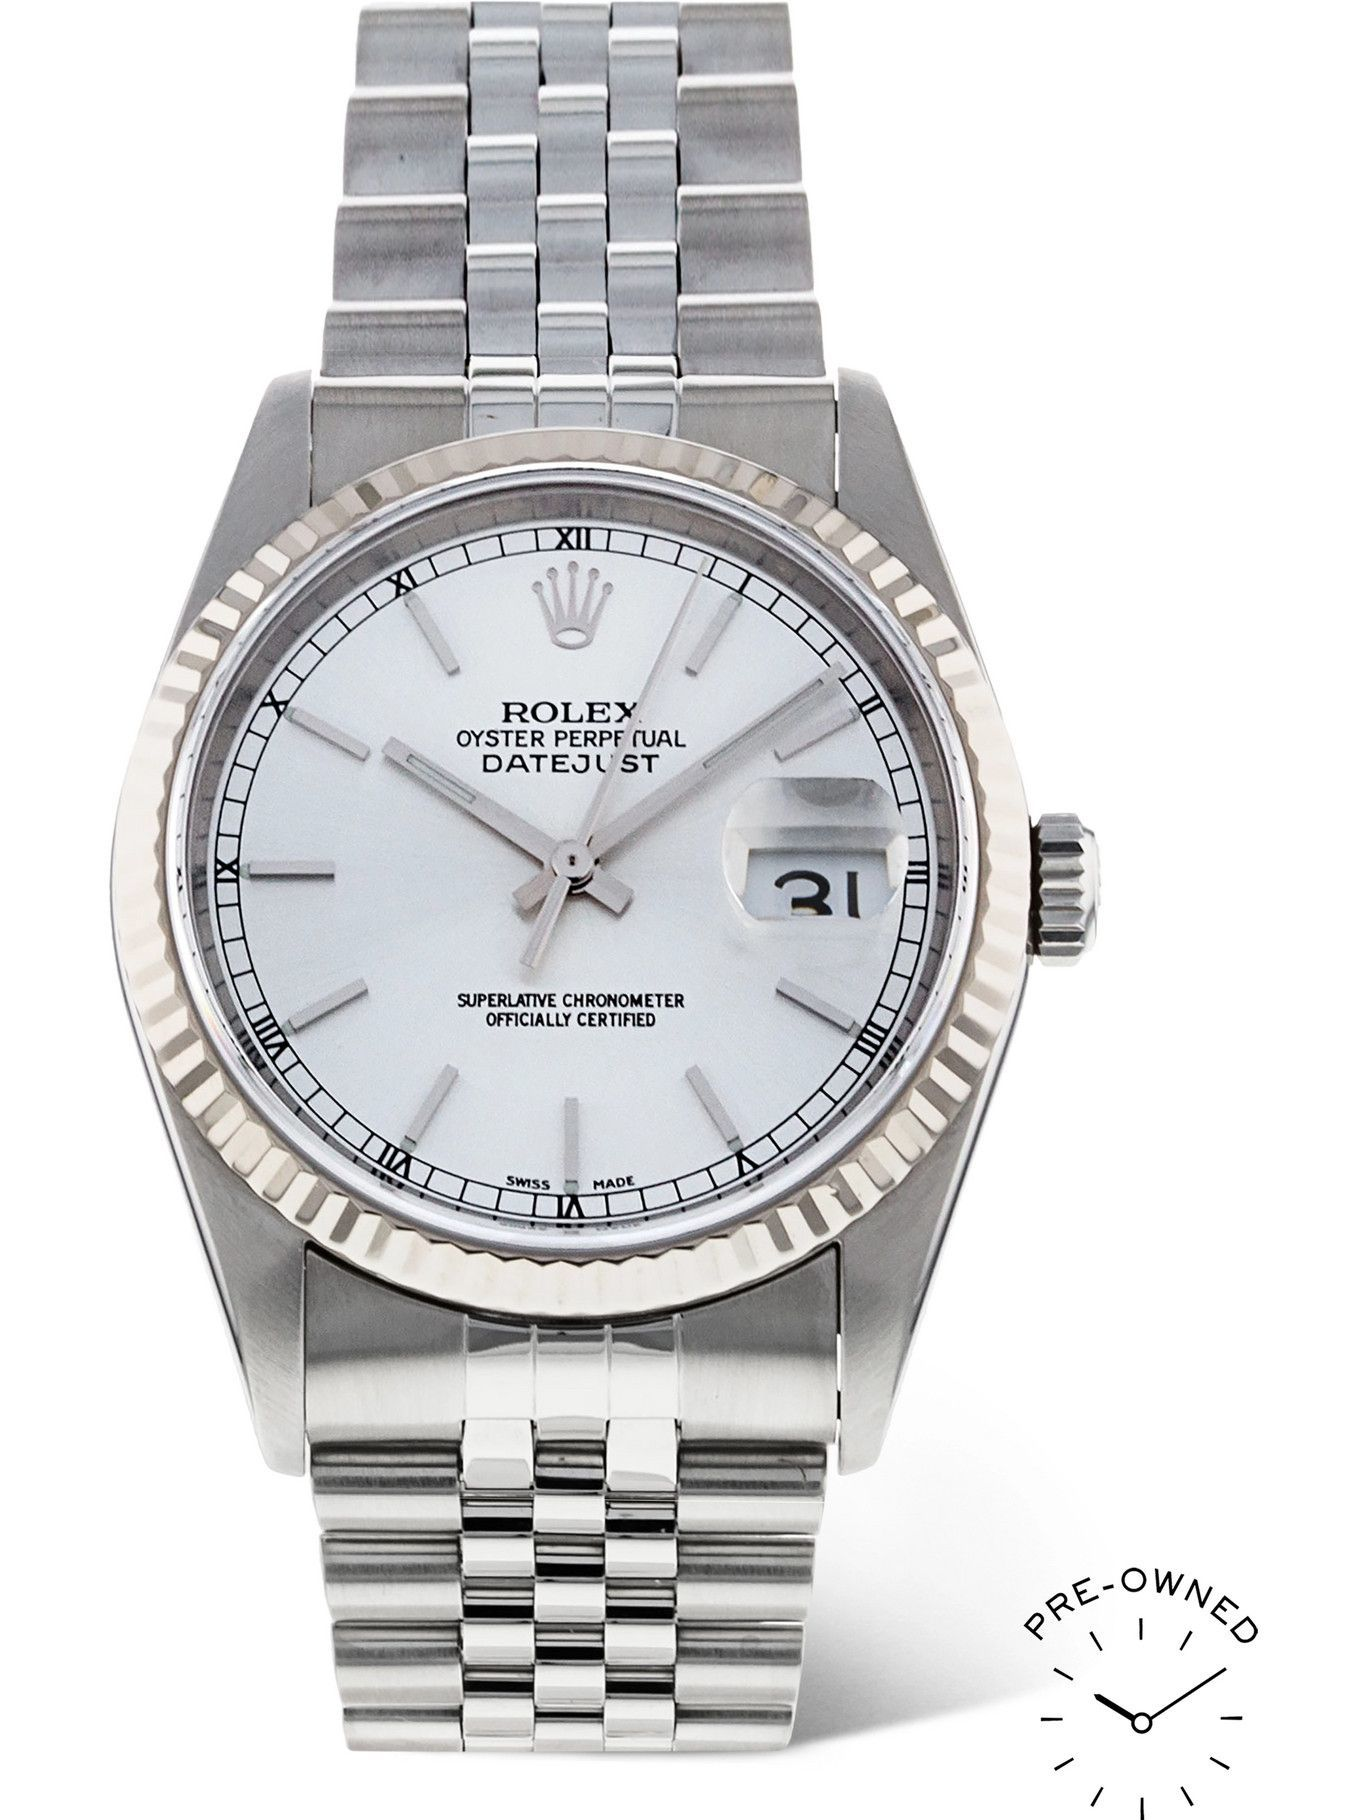 ROLEX - Pre-Owned 2001 Datejust Automatic 36mm Oystersteel and 18-Karat White Gold Watch, Ref. No. 189331